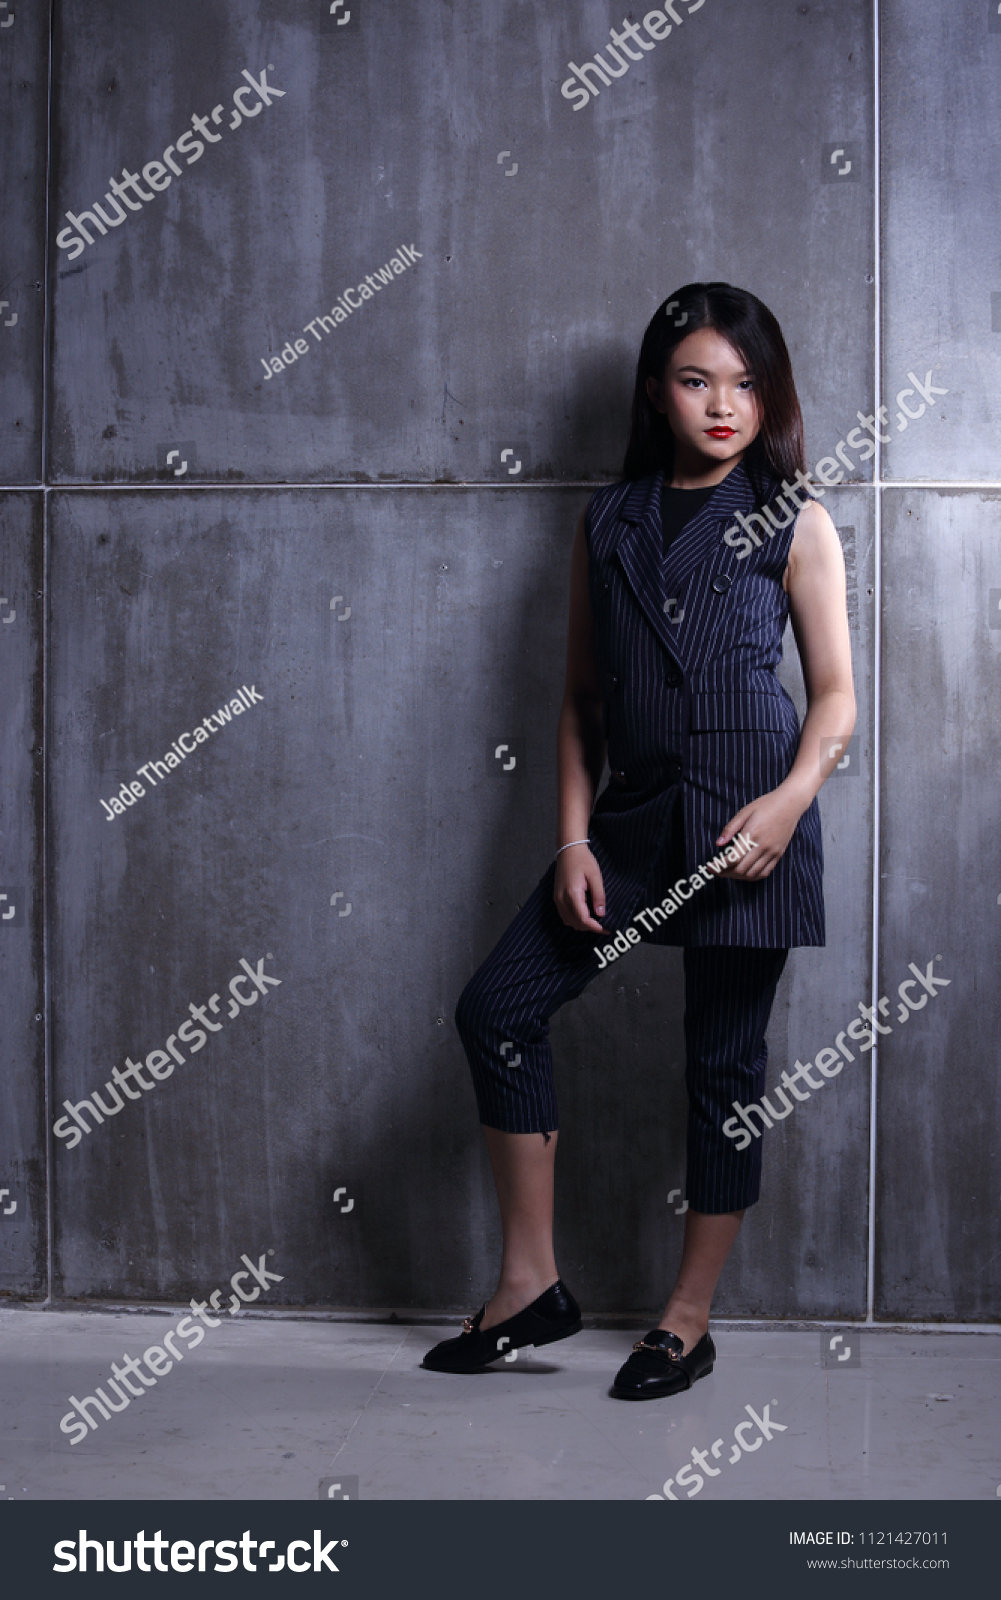 Business Kid Girl in formal suit stand on dark abstract background, studio lighting copy space for text logo, black hair eleven years old full length snap body, Fashion Face Eyes Heart Summer #1121427011